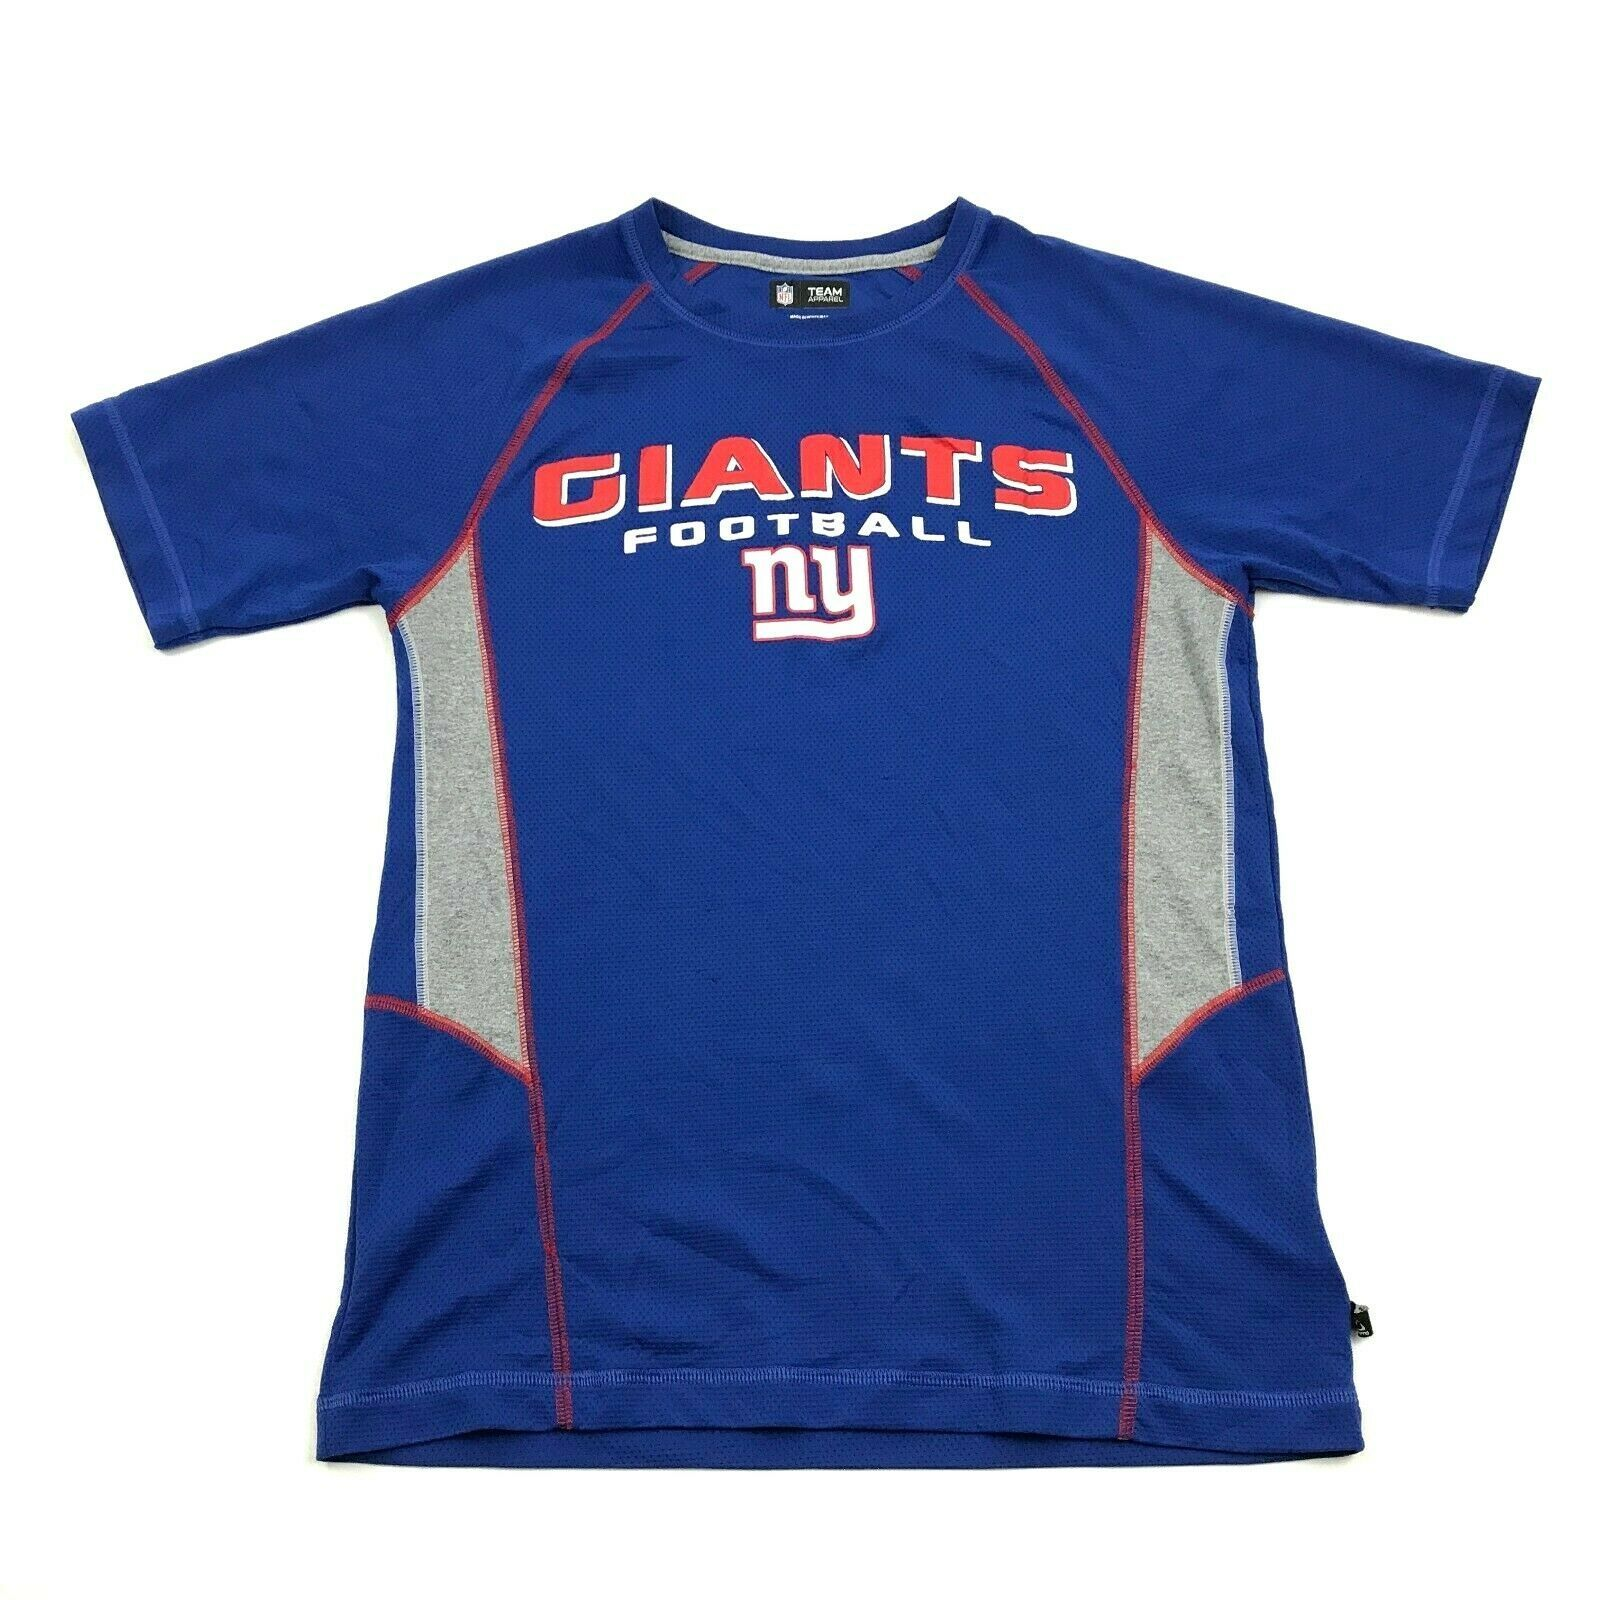 Primary image for NFL Team New York GIANTS Football Dry Fit Shirt Size S Small Royal Blue Graphic